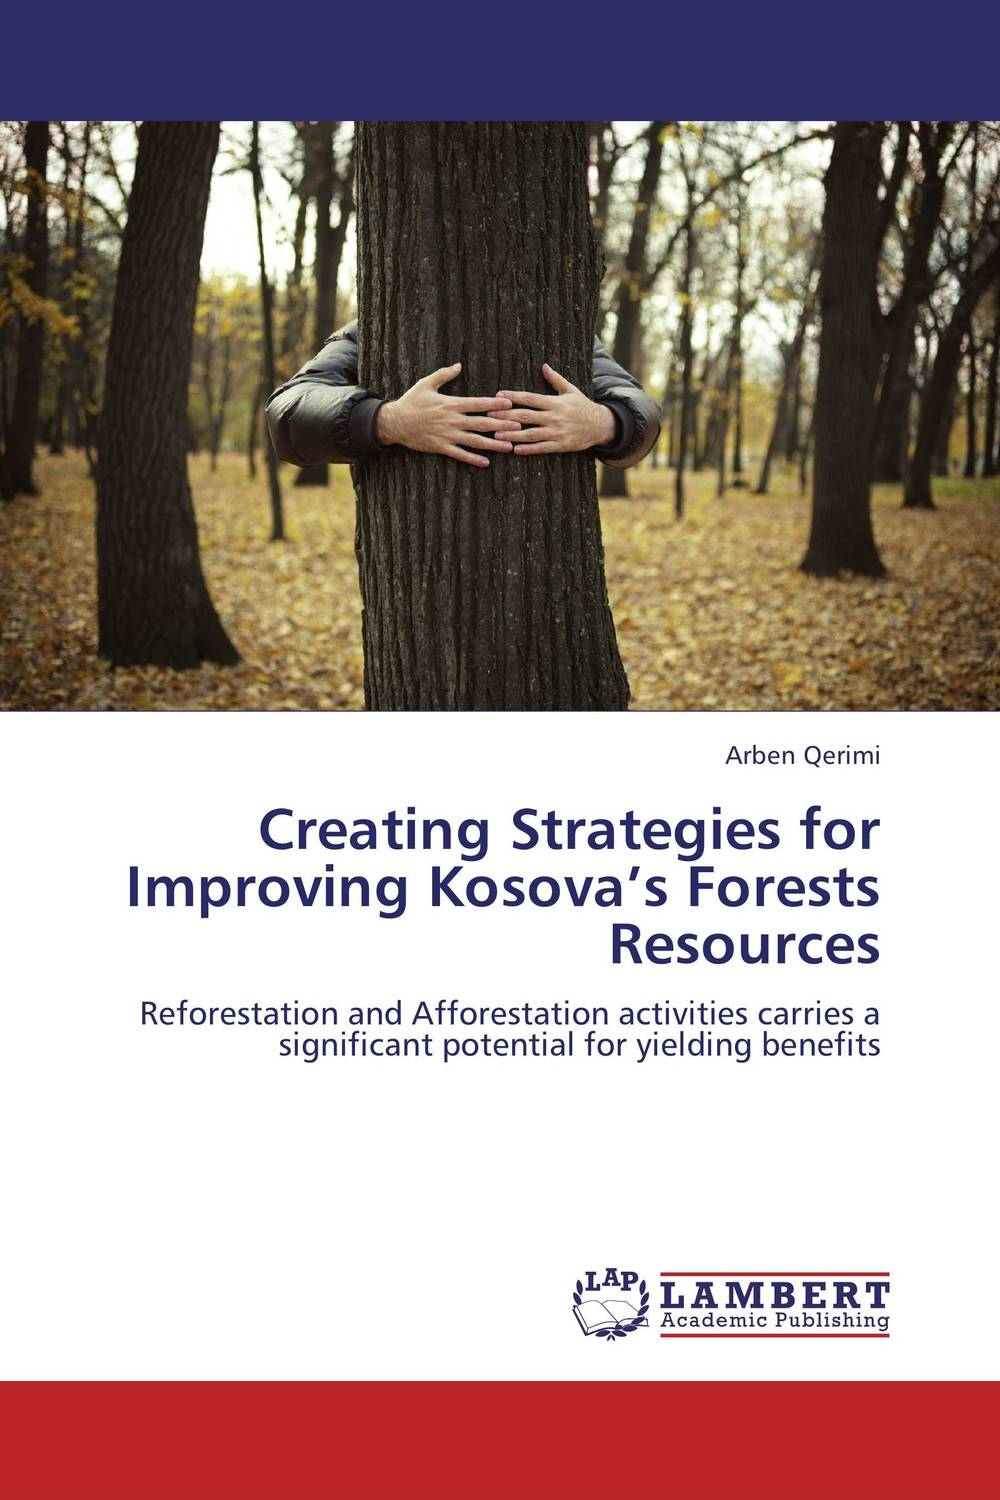 Creating Strategies for Improving Kosova's Forests Resources conflicts in forest resources usage and management